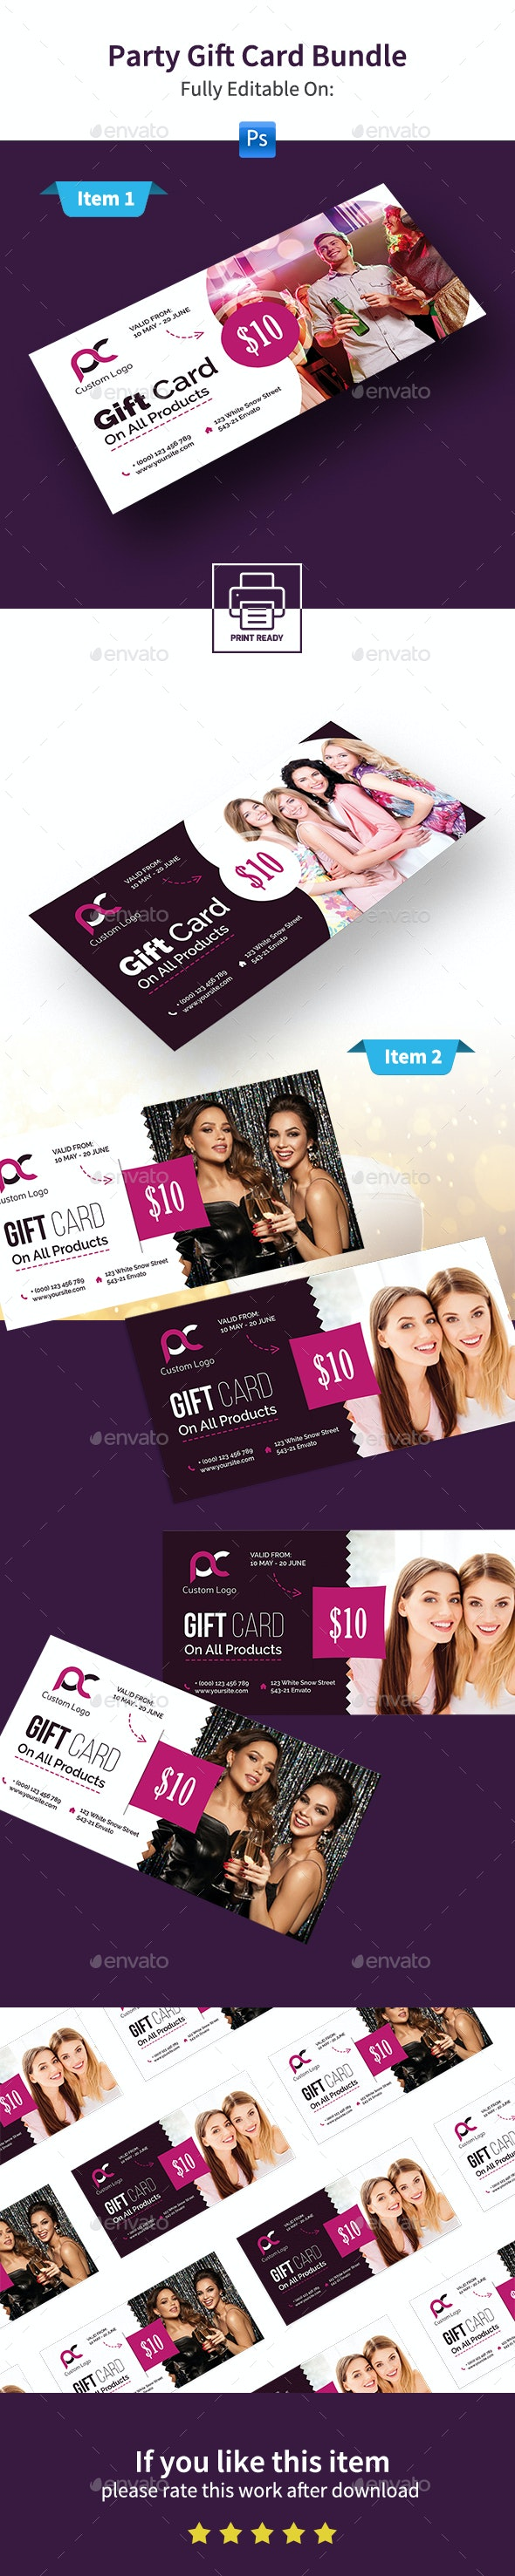 Party Gift Card Bundle - Cards & Invites Print Templates